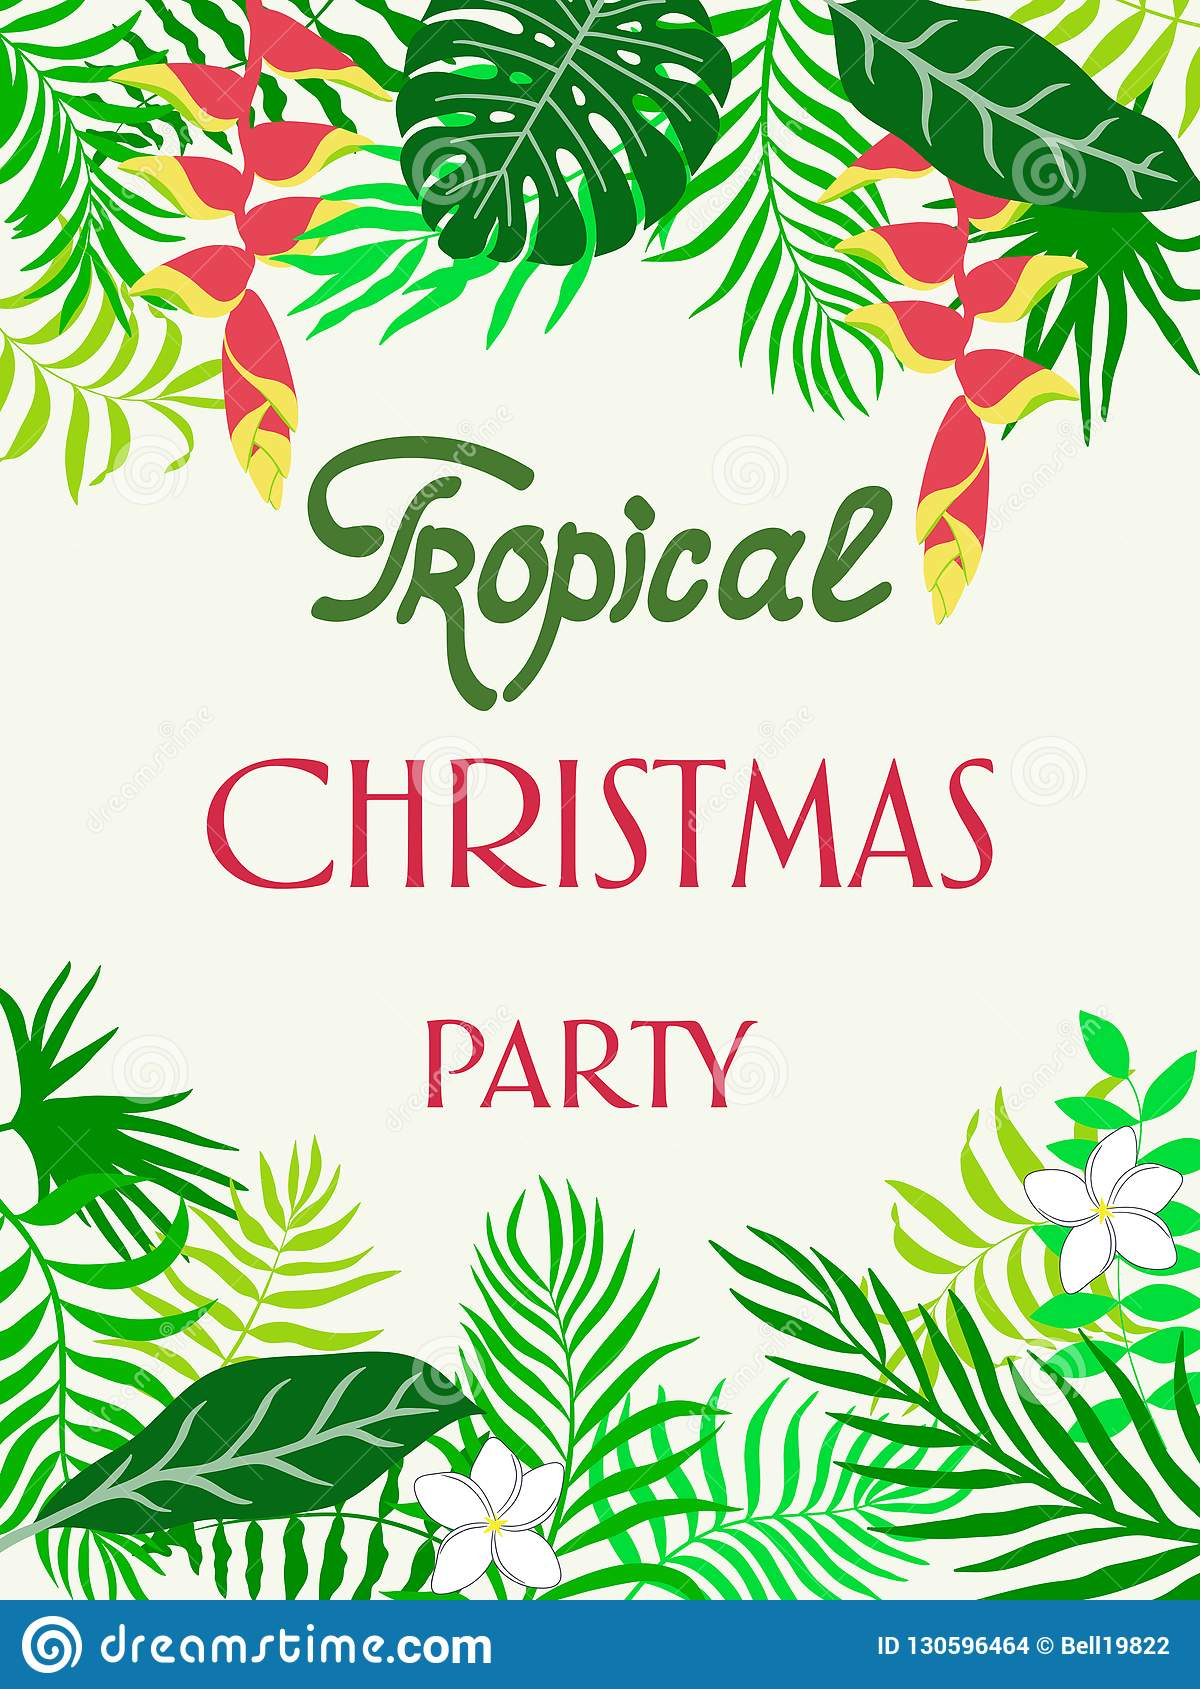 Tropical Christmas.Tropical Christmas Party Background With Hand Drawn Palm